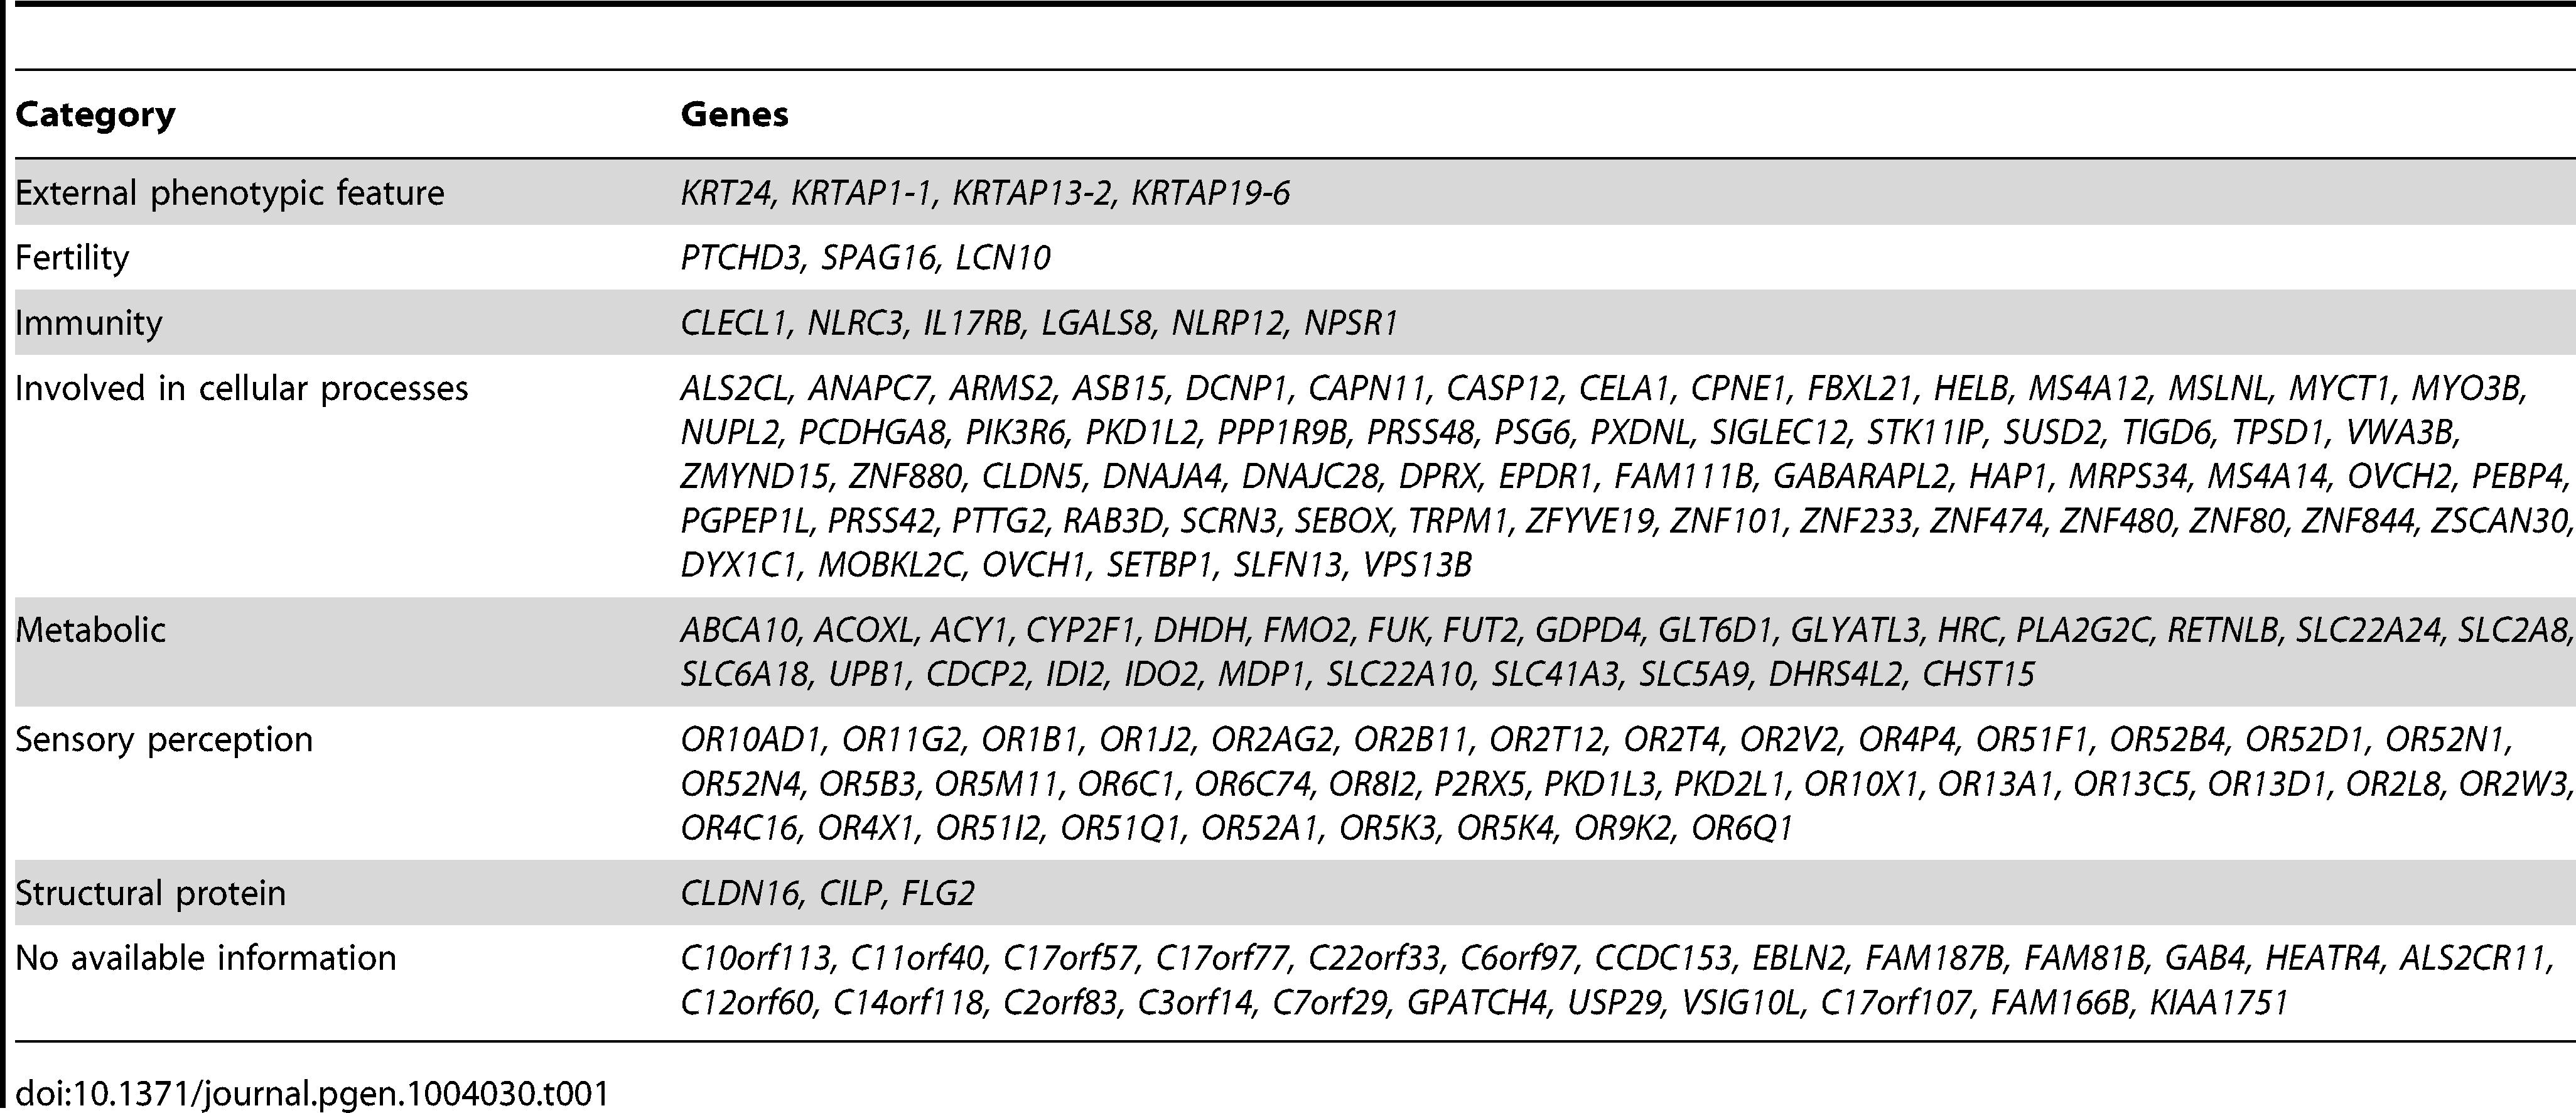 "Summary of genes with biallelic LoF (please refer to Supp. <em class=""ref"">Table S2</em> for a full list of the LoF alleles, and to Supp. <em class=""ref"">Table S4</em> for a full list of the reported function for each of these genes and the score of the LoF allele)."